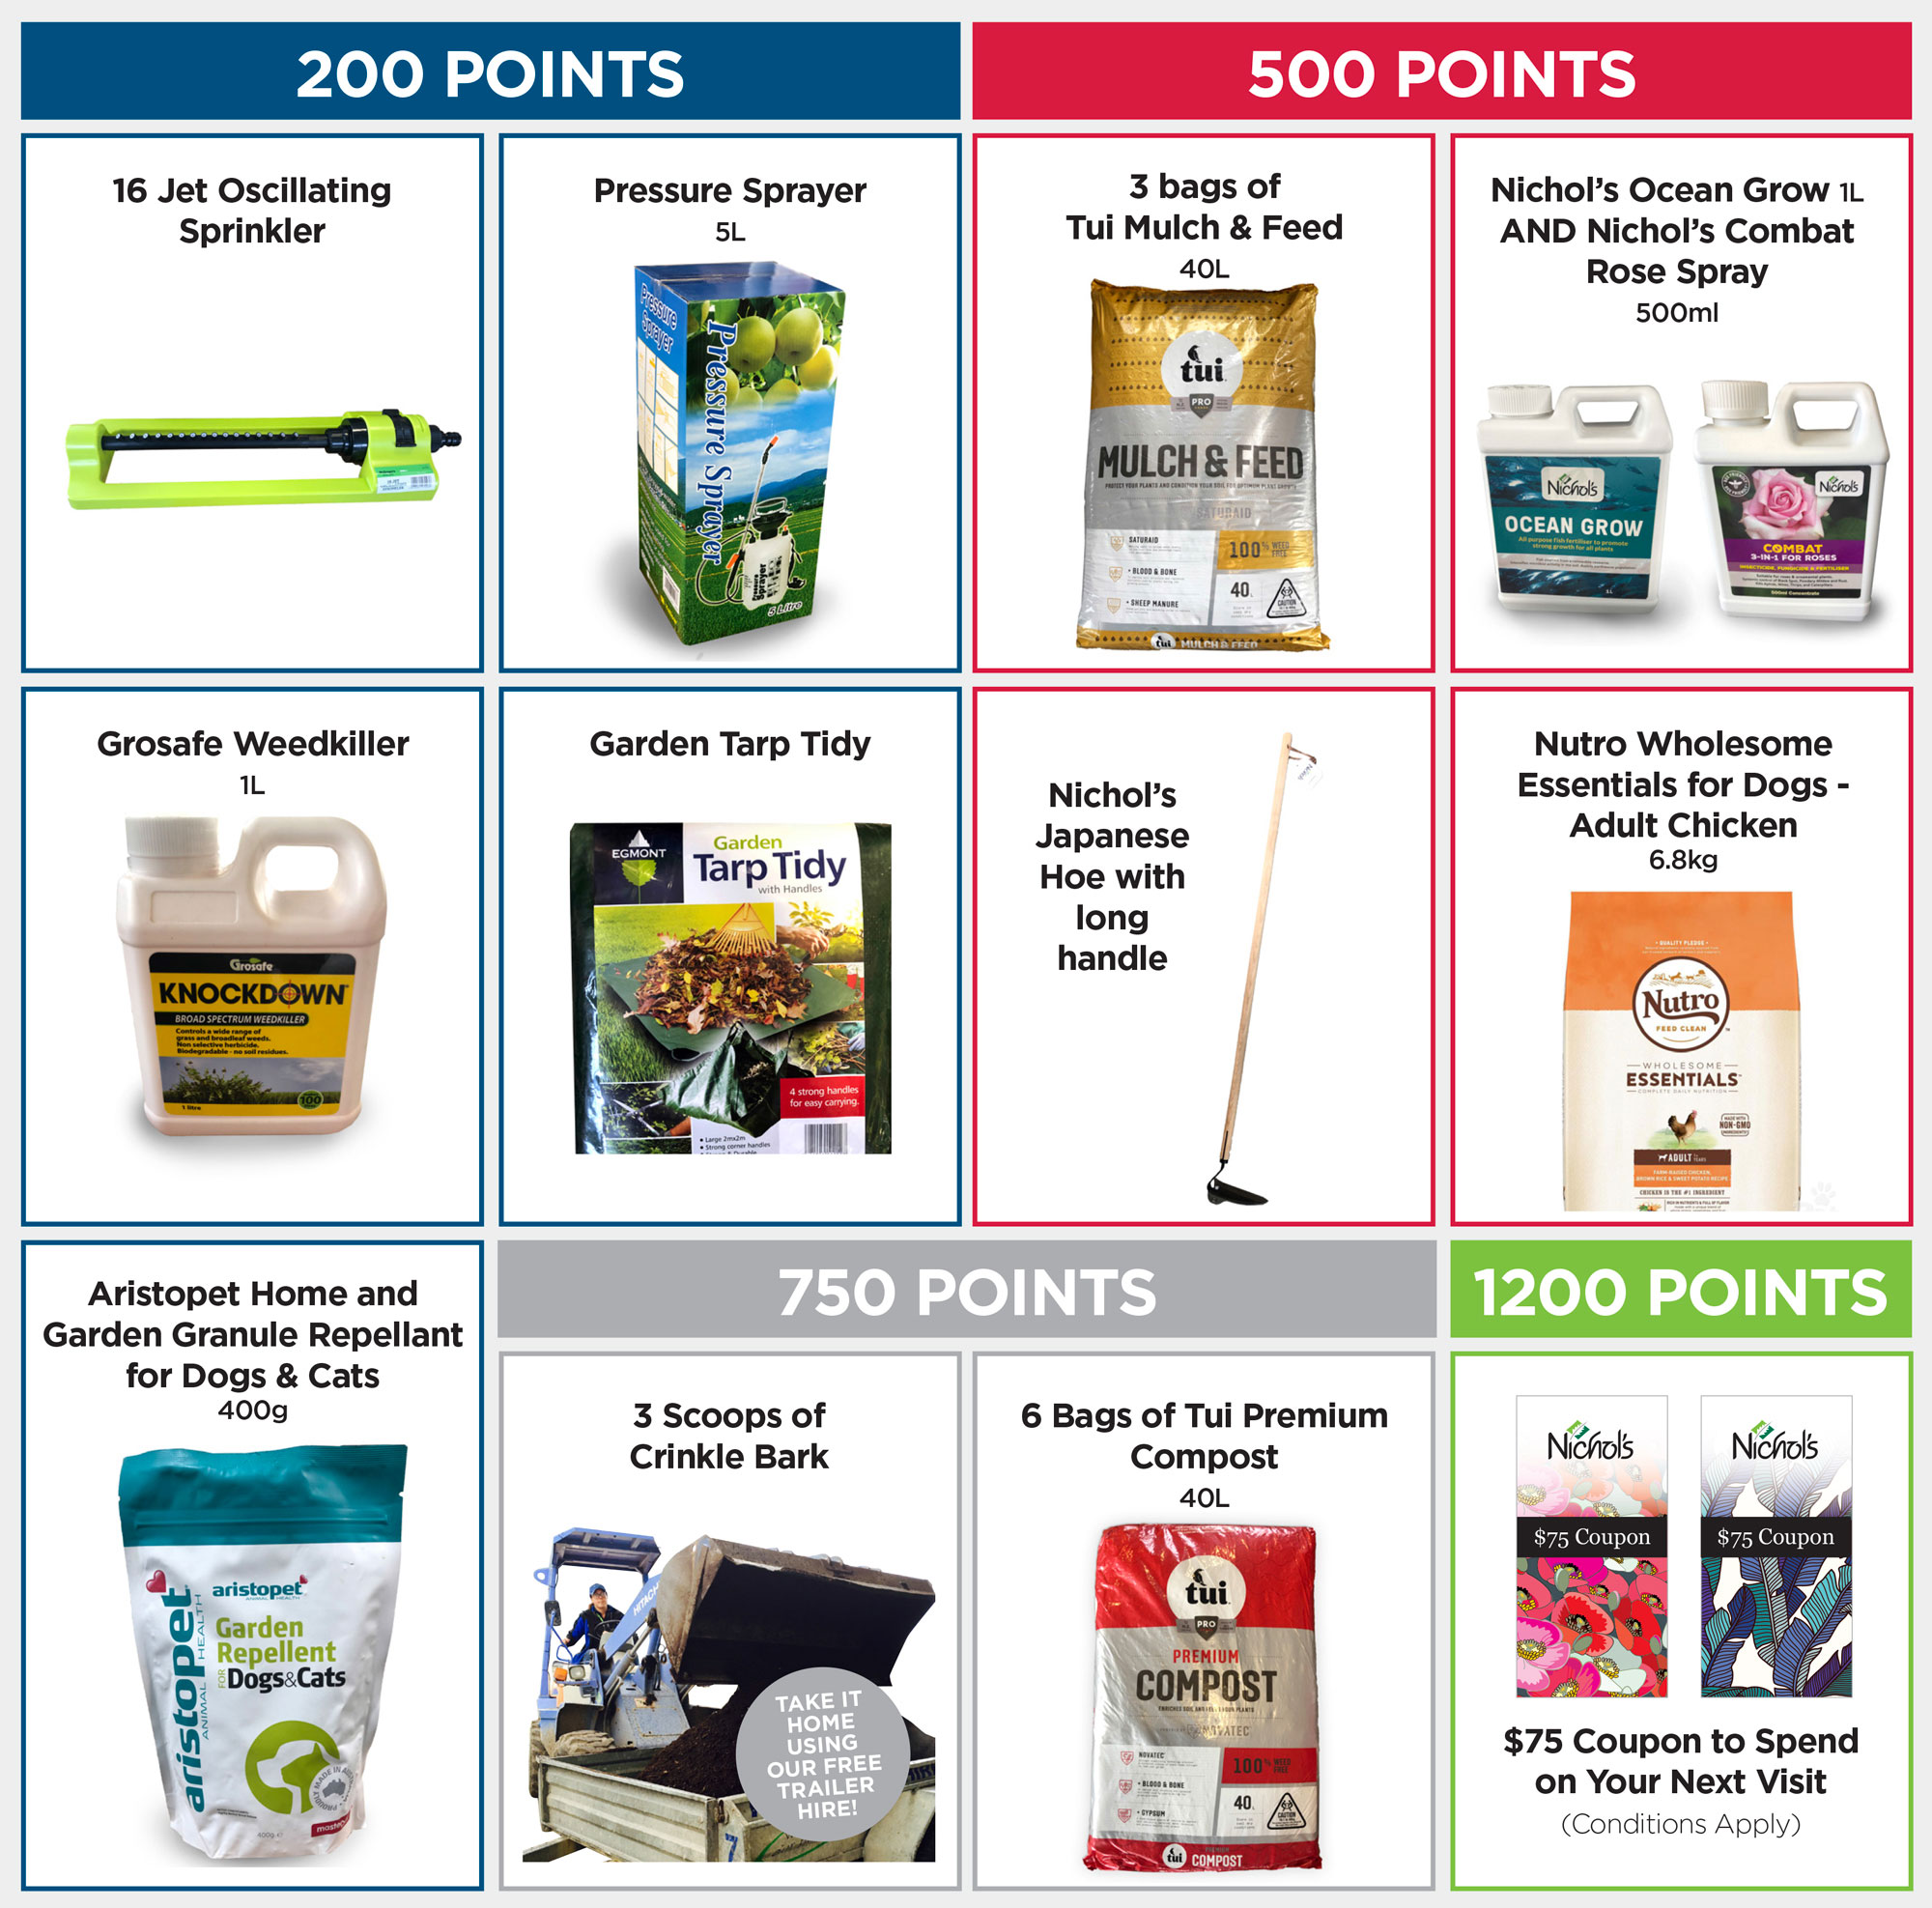 Nichol's Growing Rewards Products